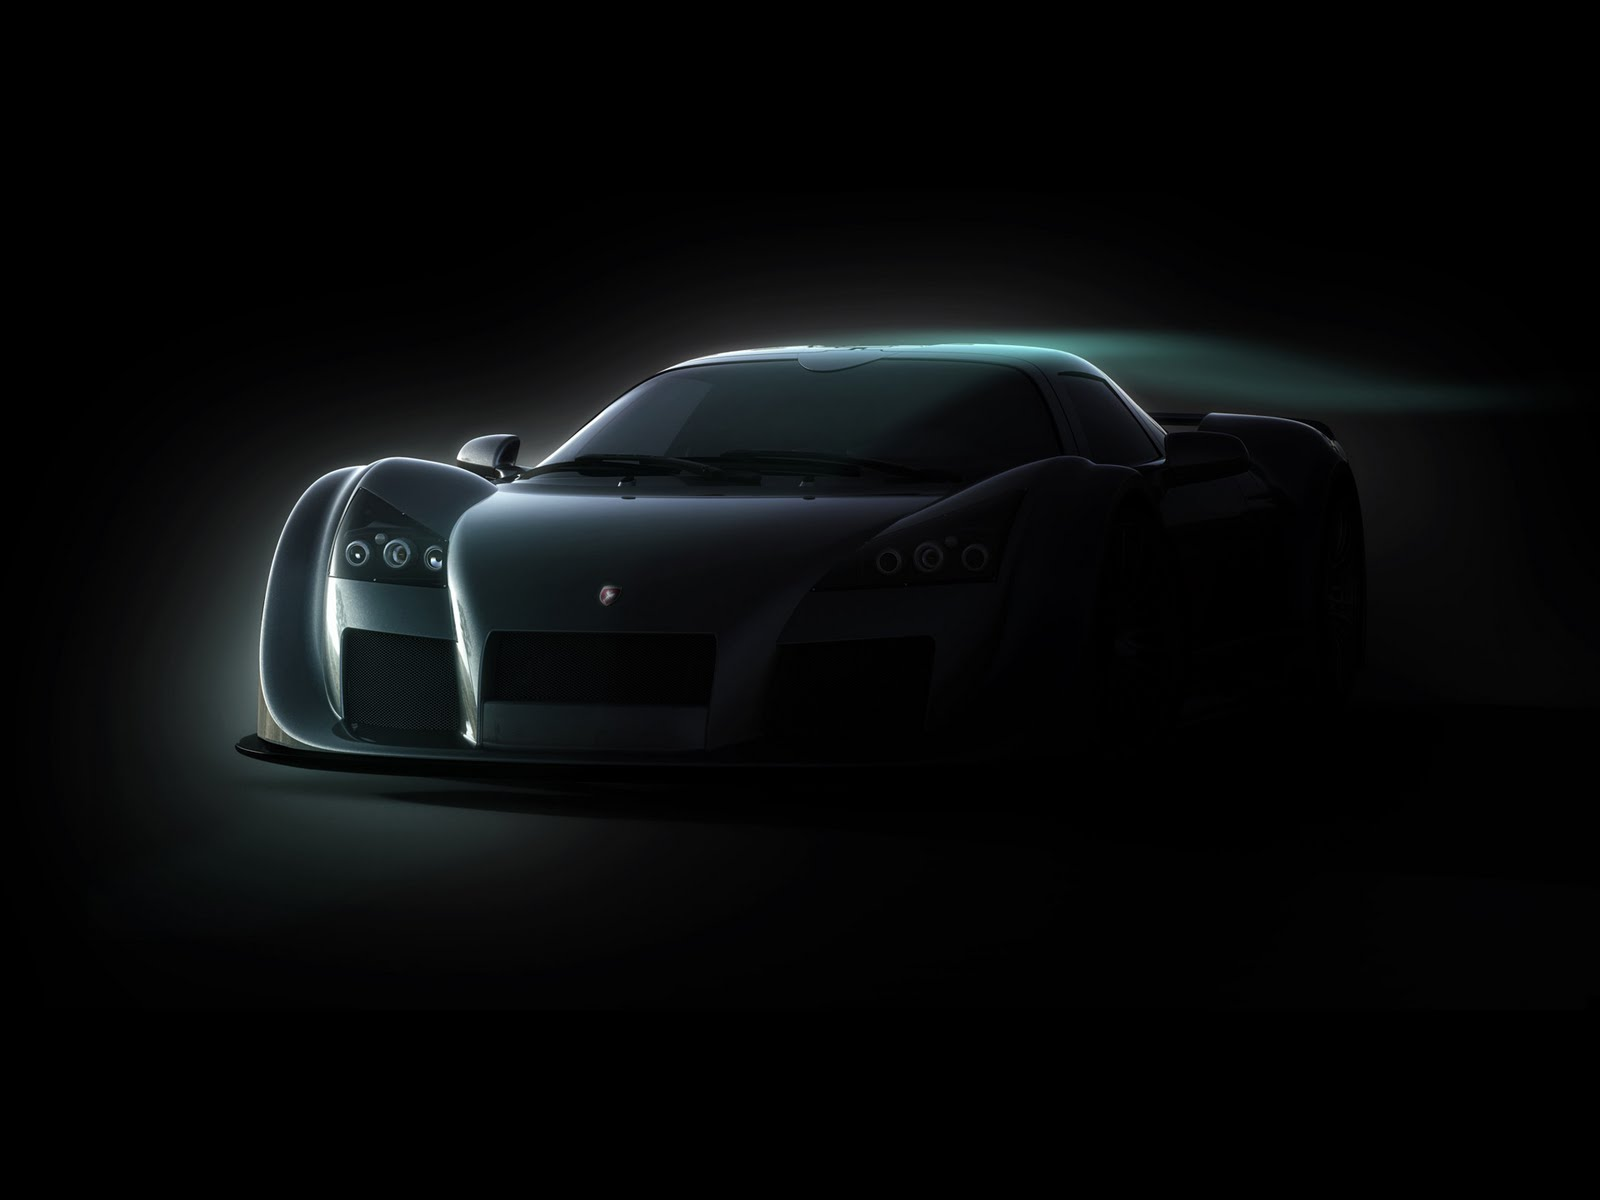 COOL IMAGES: Gumpert Apollo Wallpapers